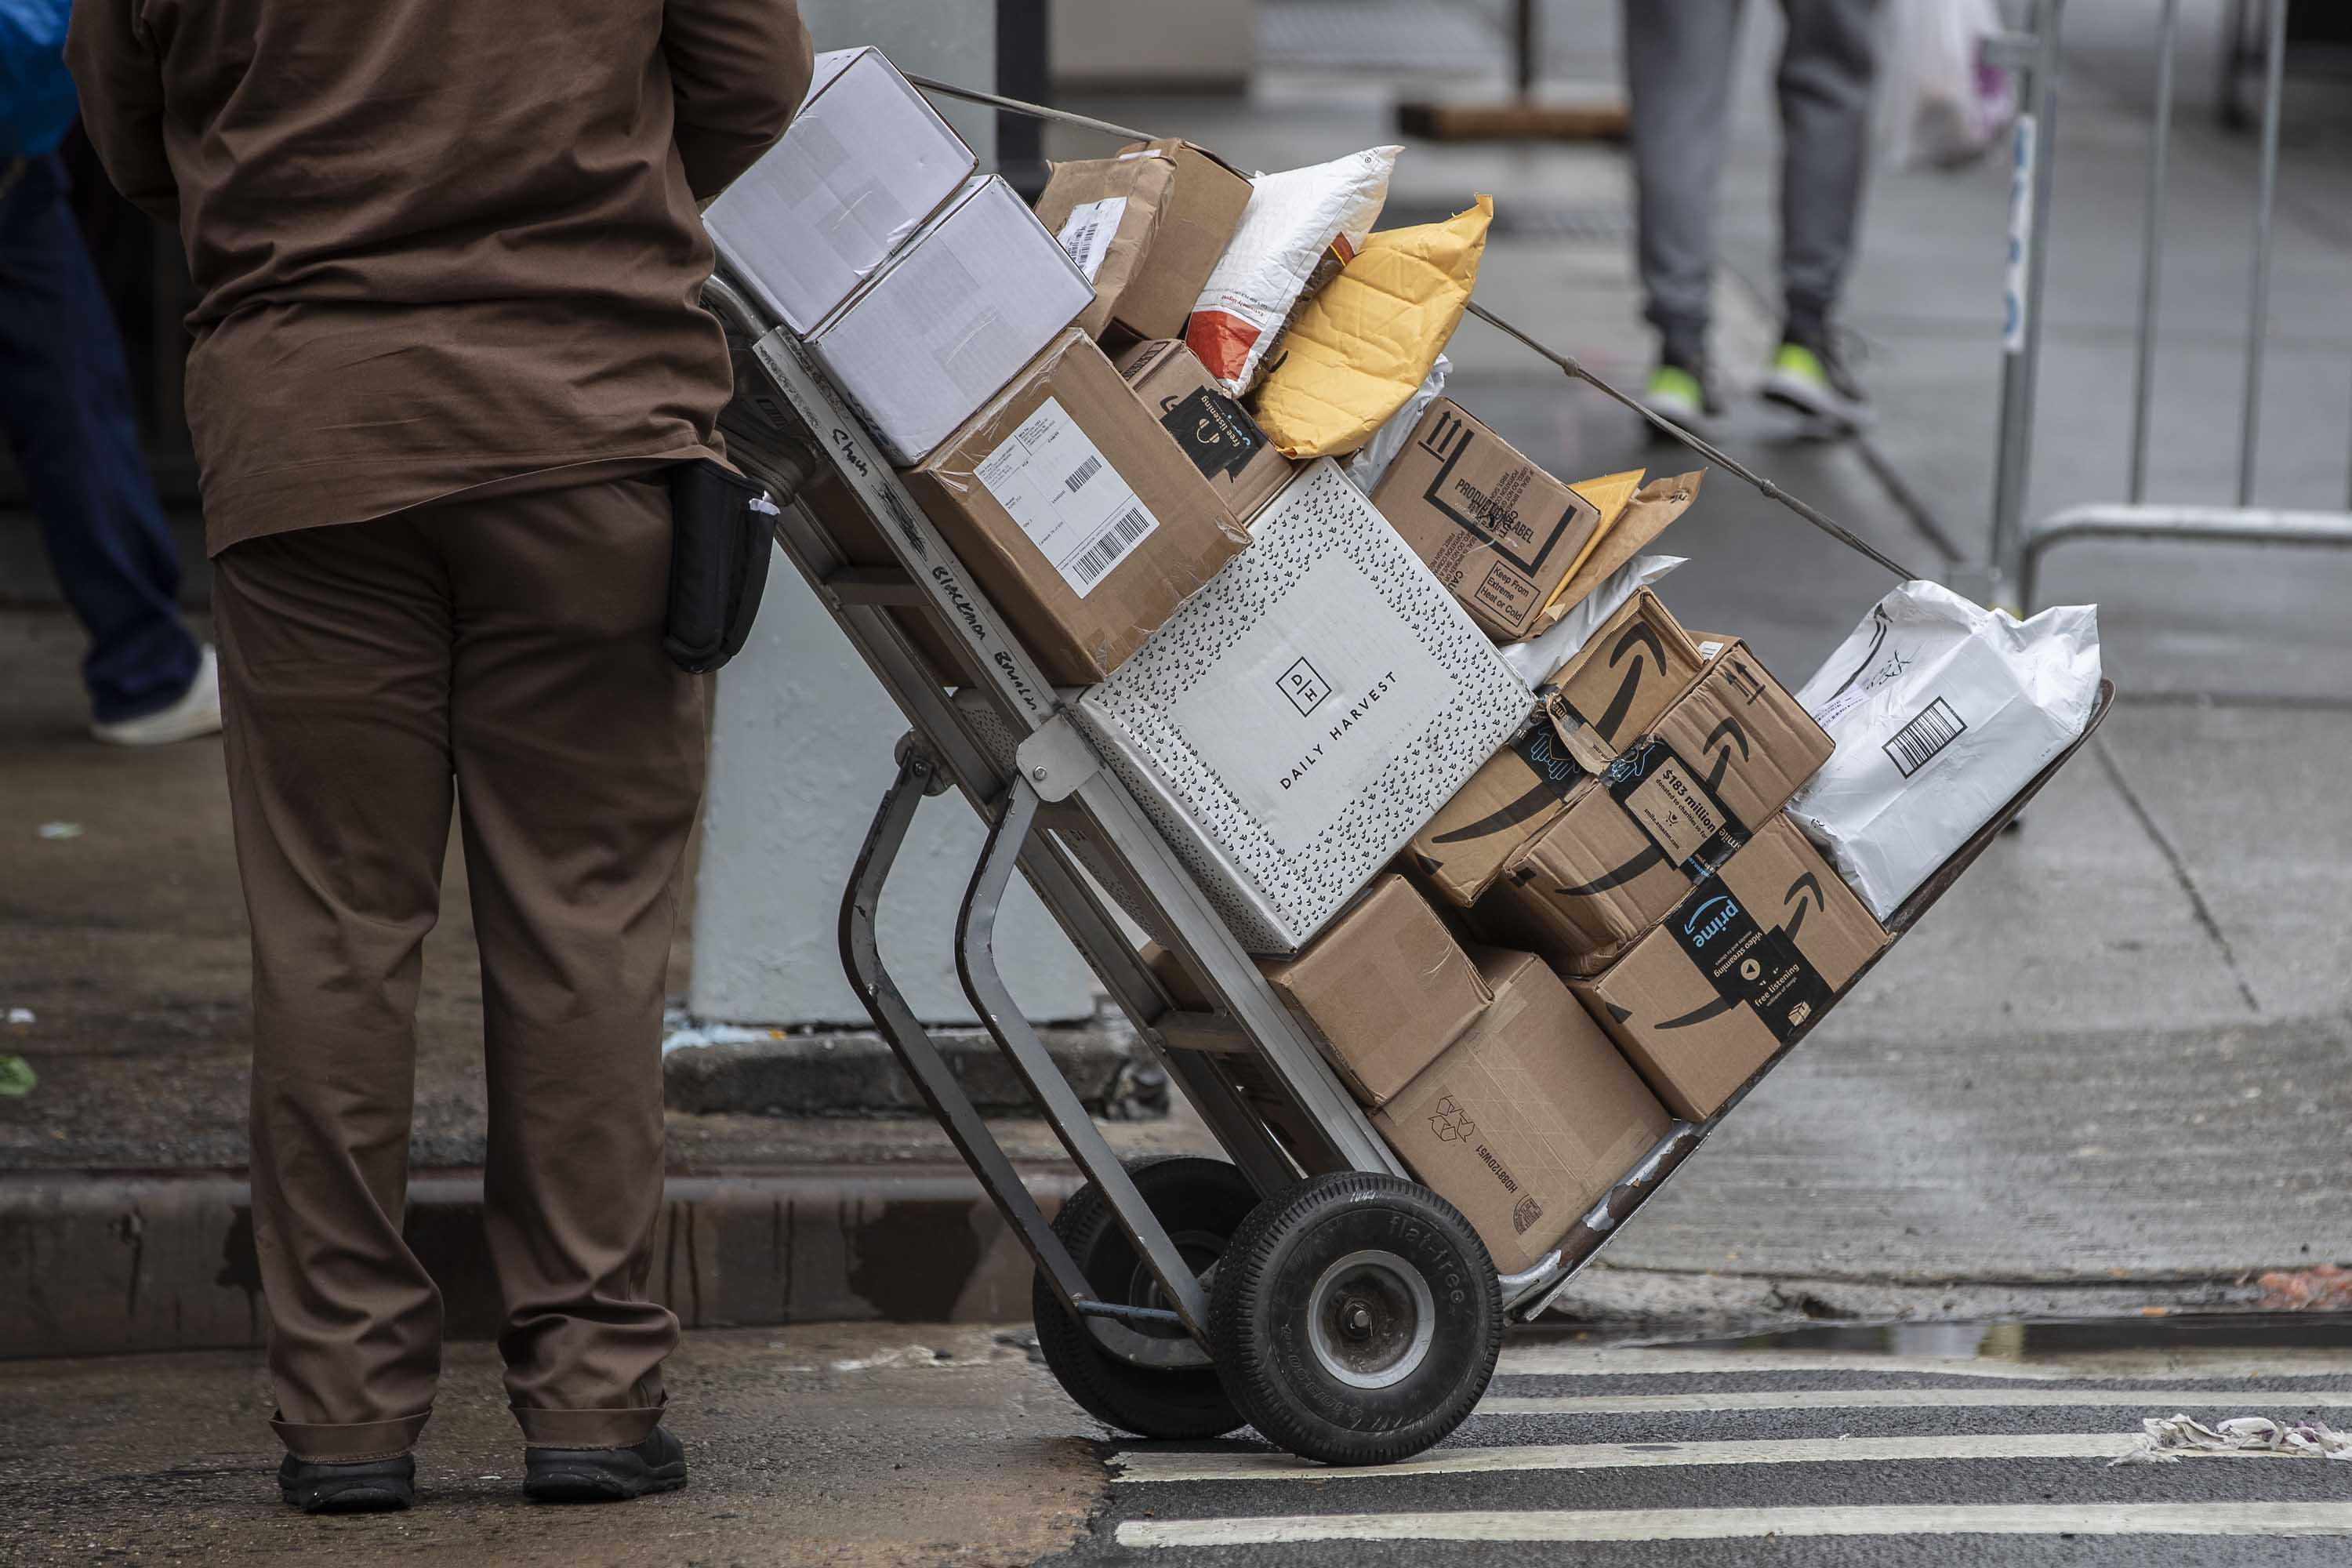 A UPS driver pushes a trolley with packages during a delivery in New York, on October 13.